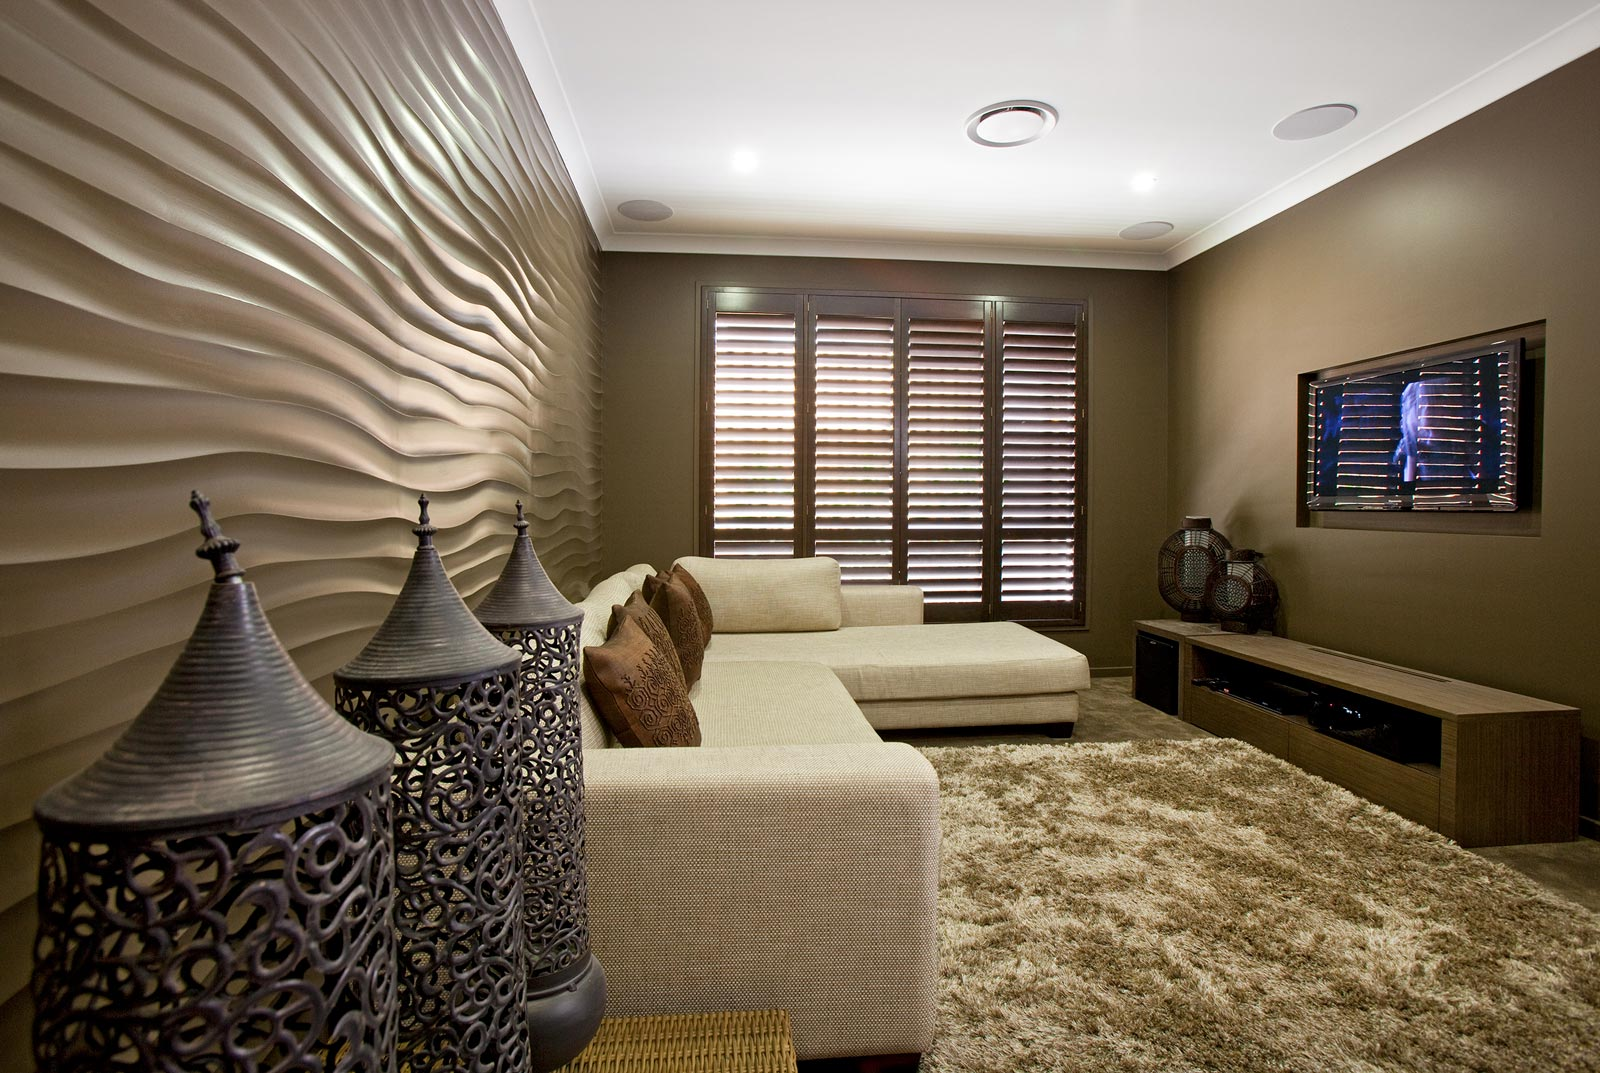 living room australia tips for transforming your walls using textured cladding 11482